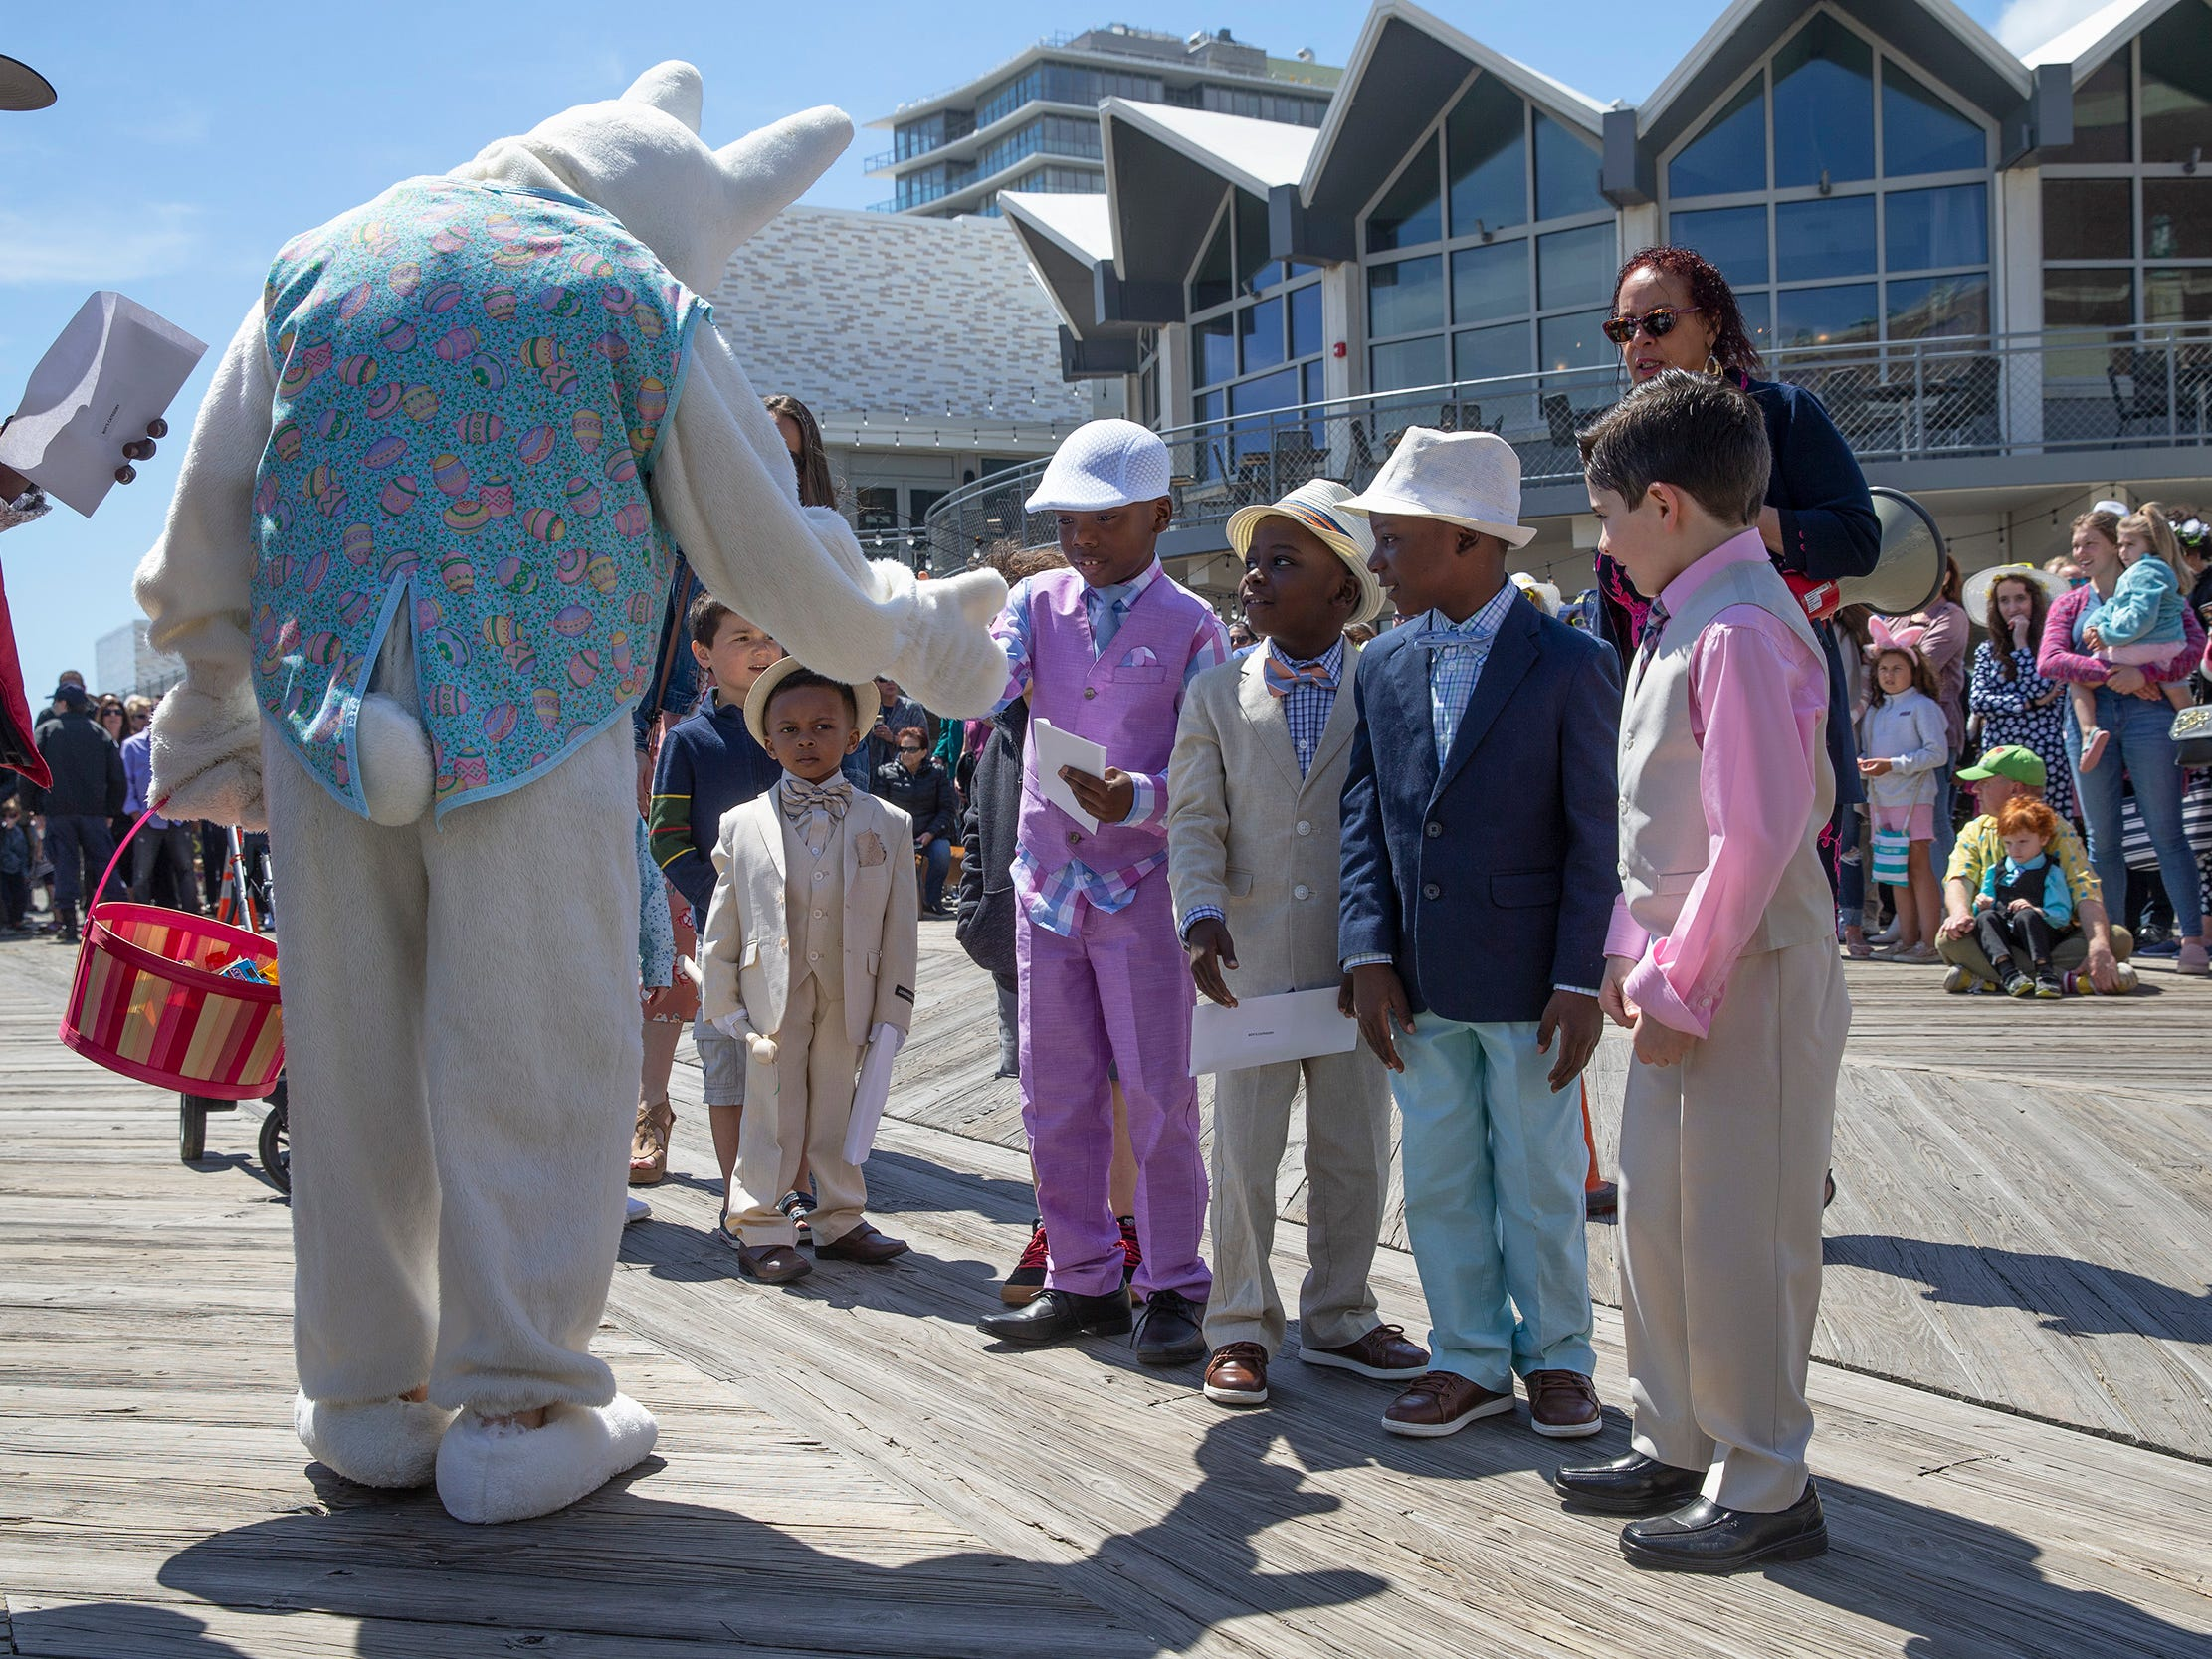 Boys judging at Asbury Park Easter Parade on the boardwalk outside the Paramount Theatre in Asbury Park on April 21, 2019.